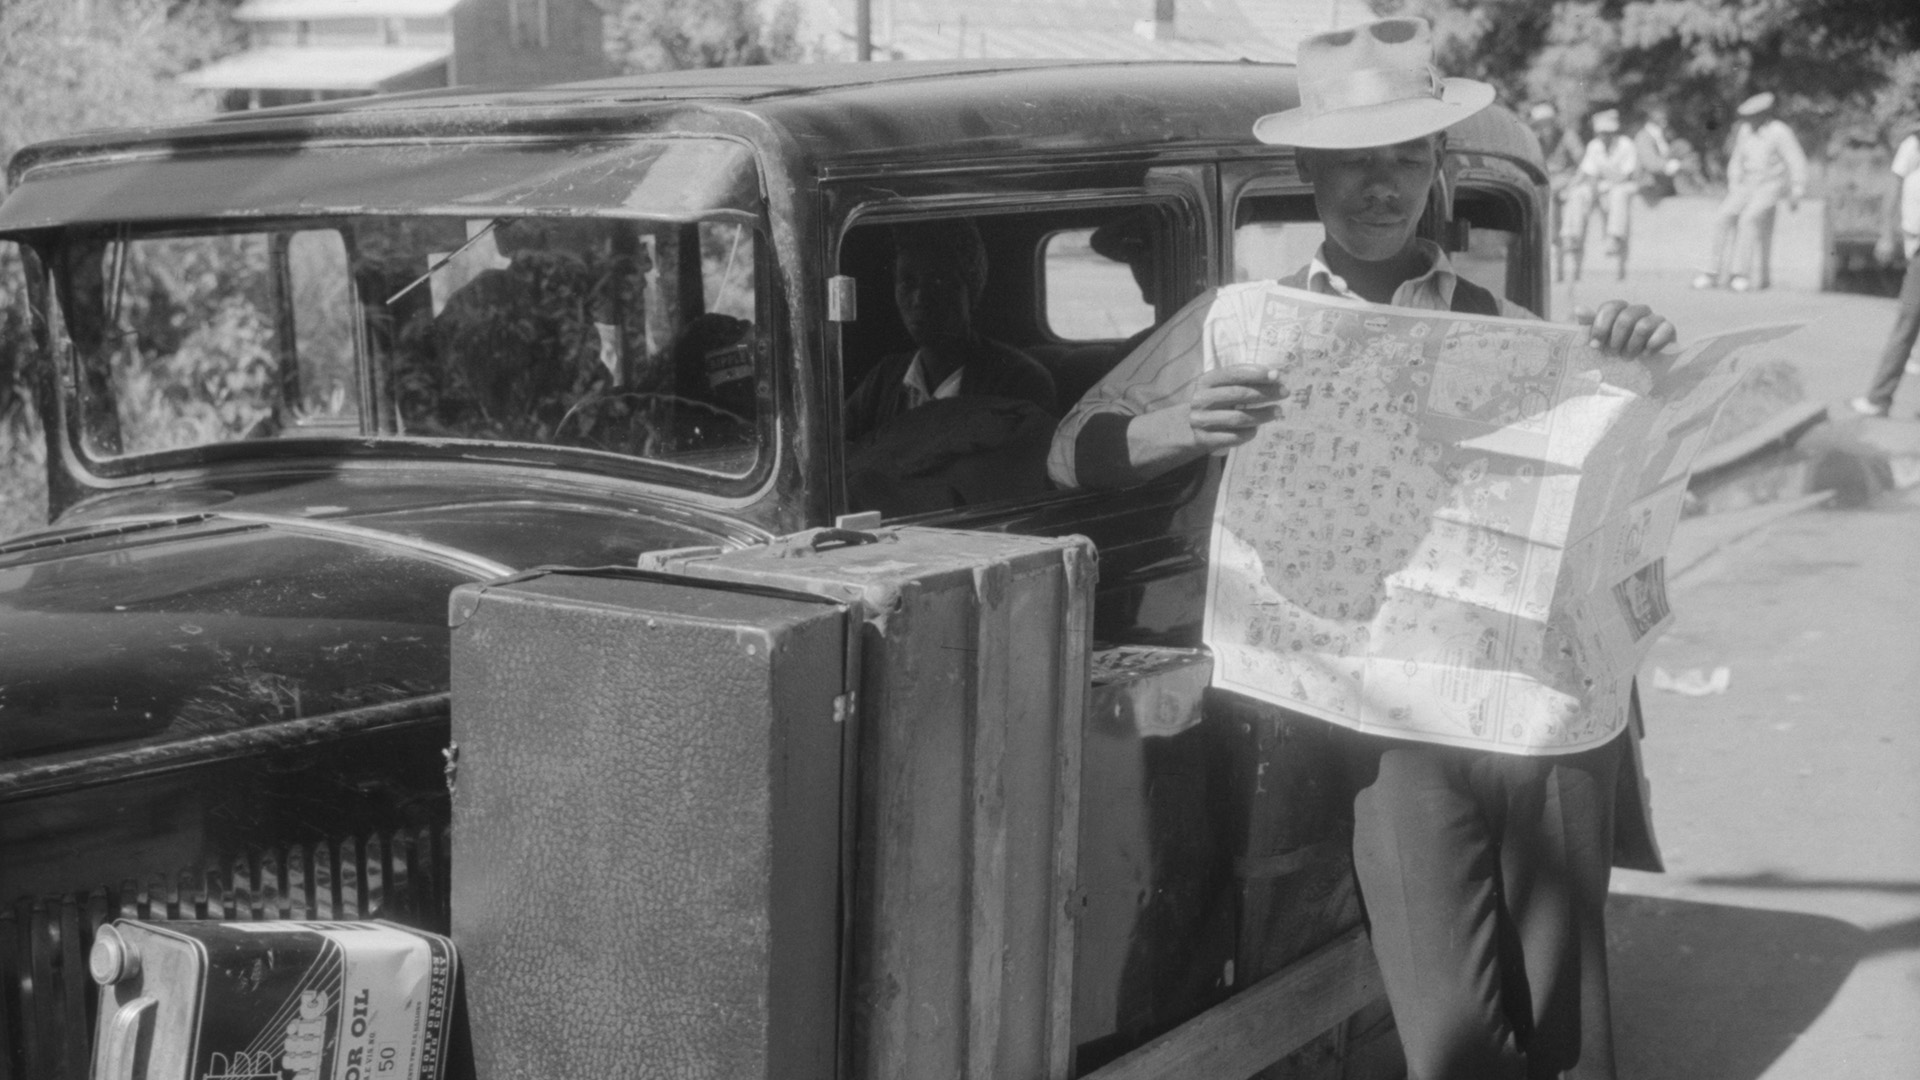 An African American man reads a road map while leaning against a car.